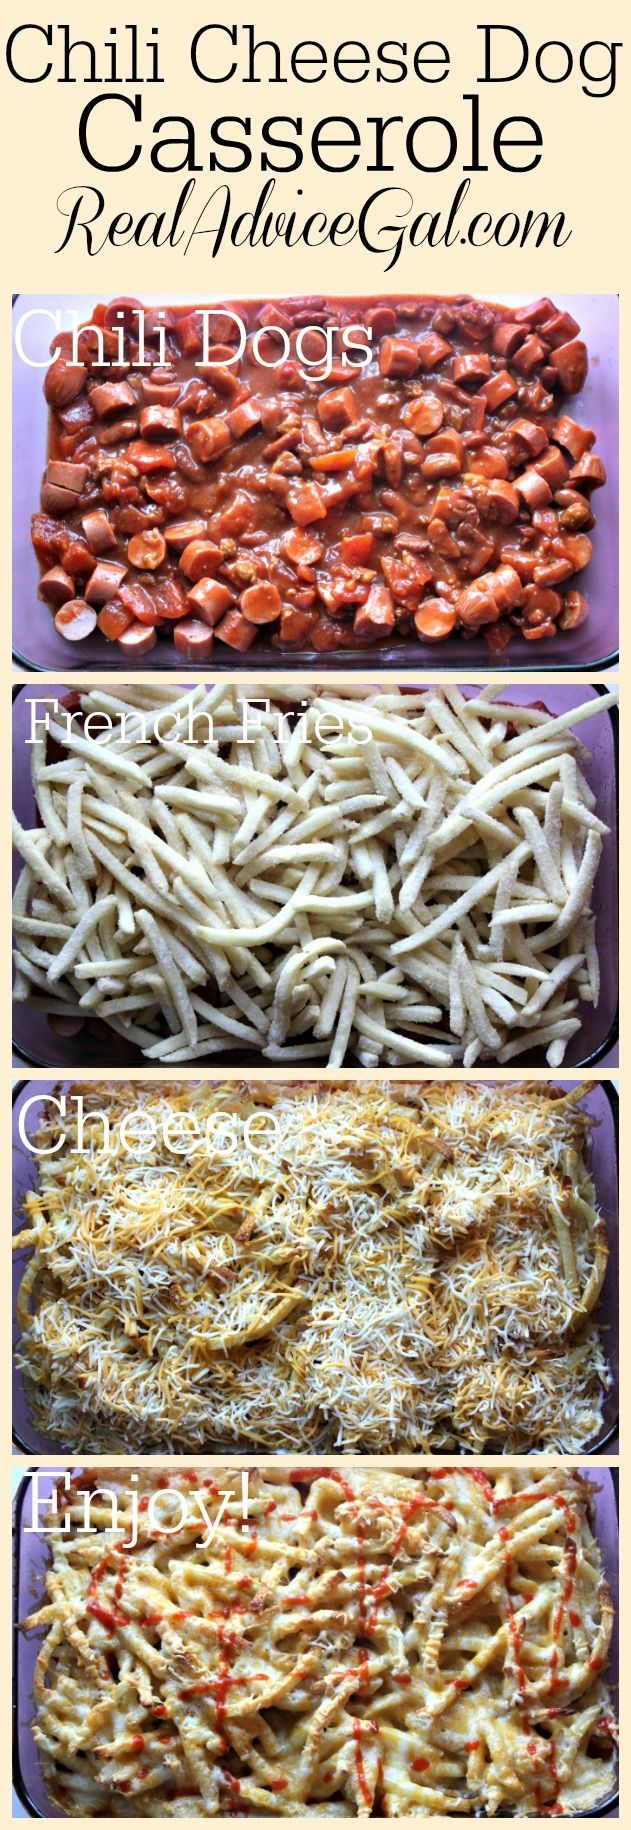 This Chili Cheese Dog Casserole Recipe is perfect for a busy night! It's easy to make and tastes great!